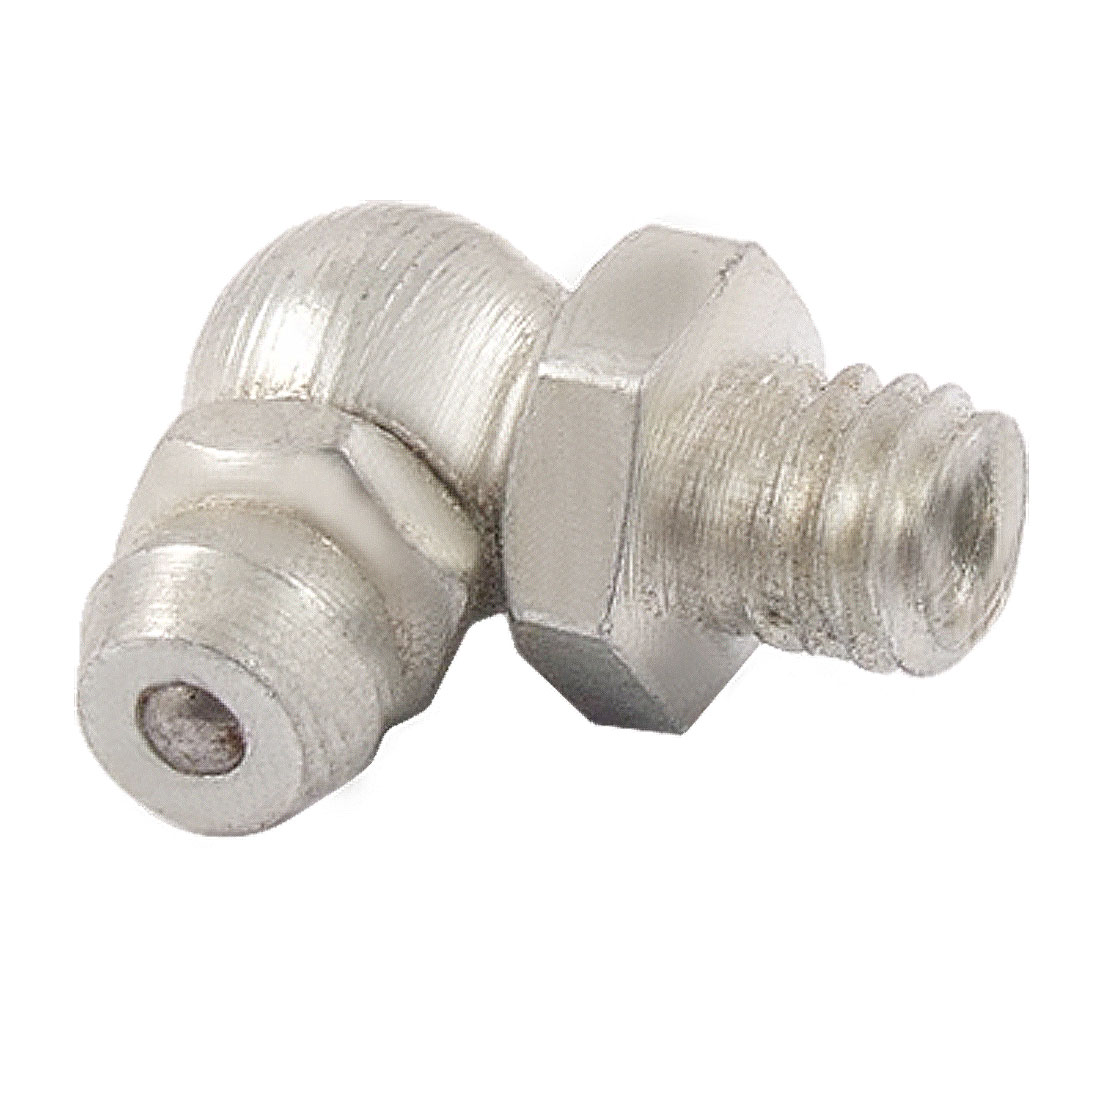 M6 6mm Male Thread 90 Degree Angle Grease Nipple Zerk Fitting